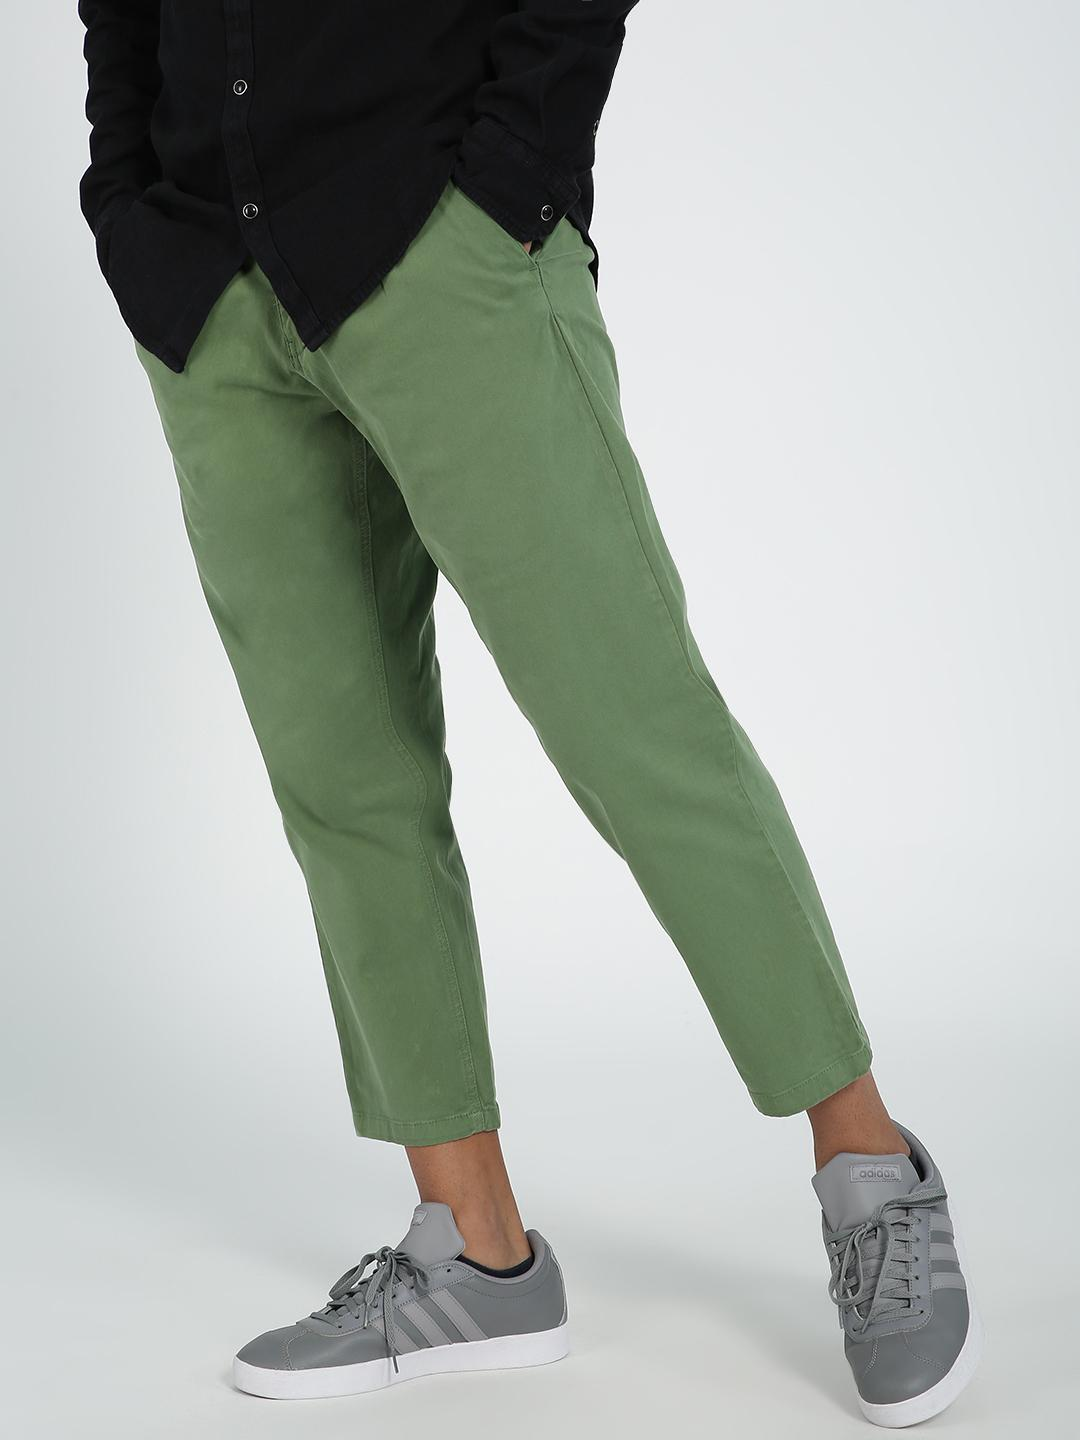 Blue Saint Green Pleated Cropped Trousers 1